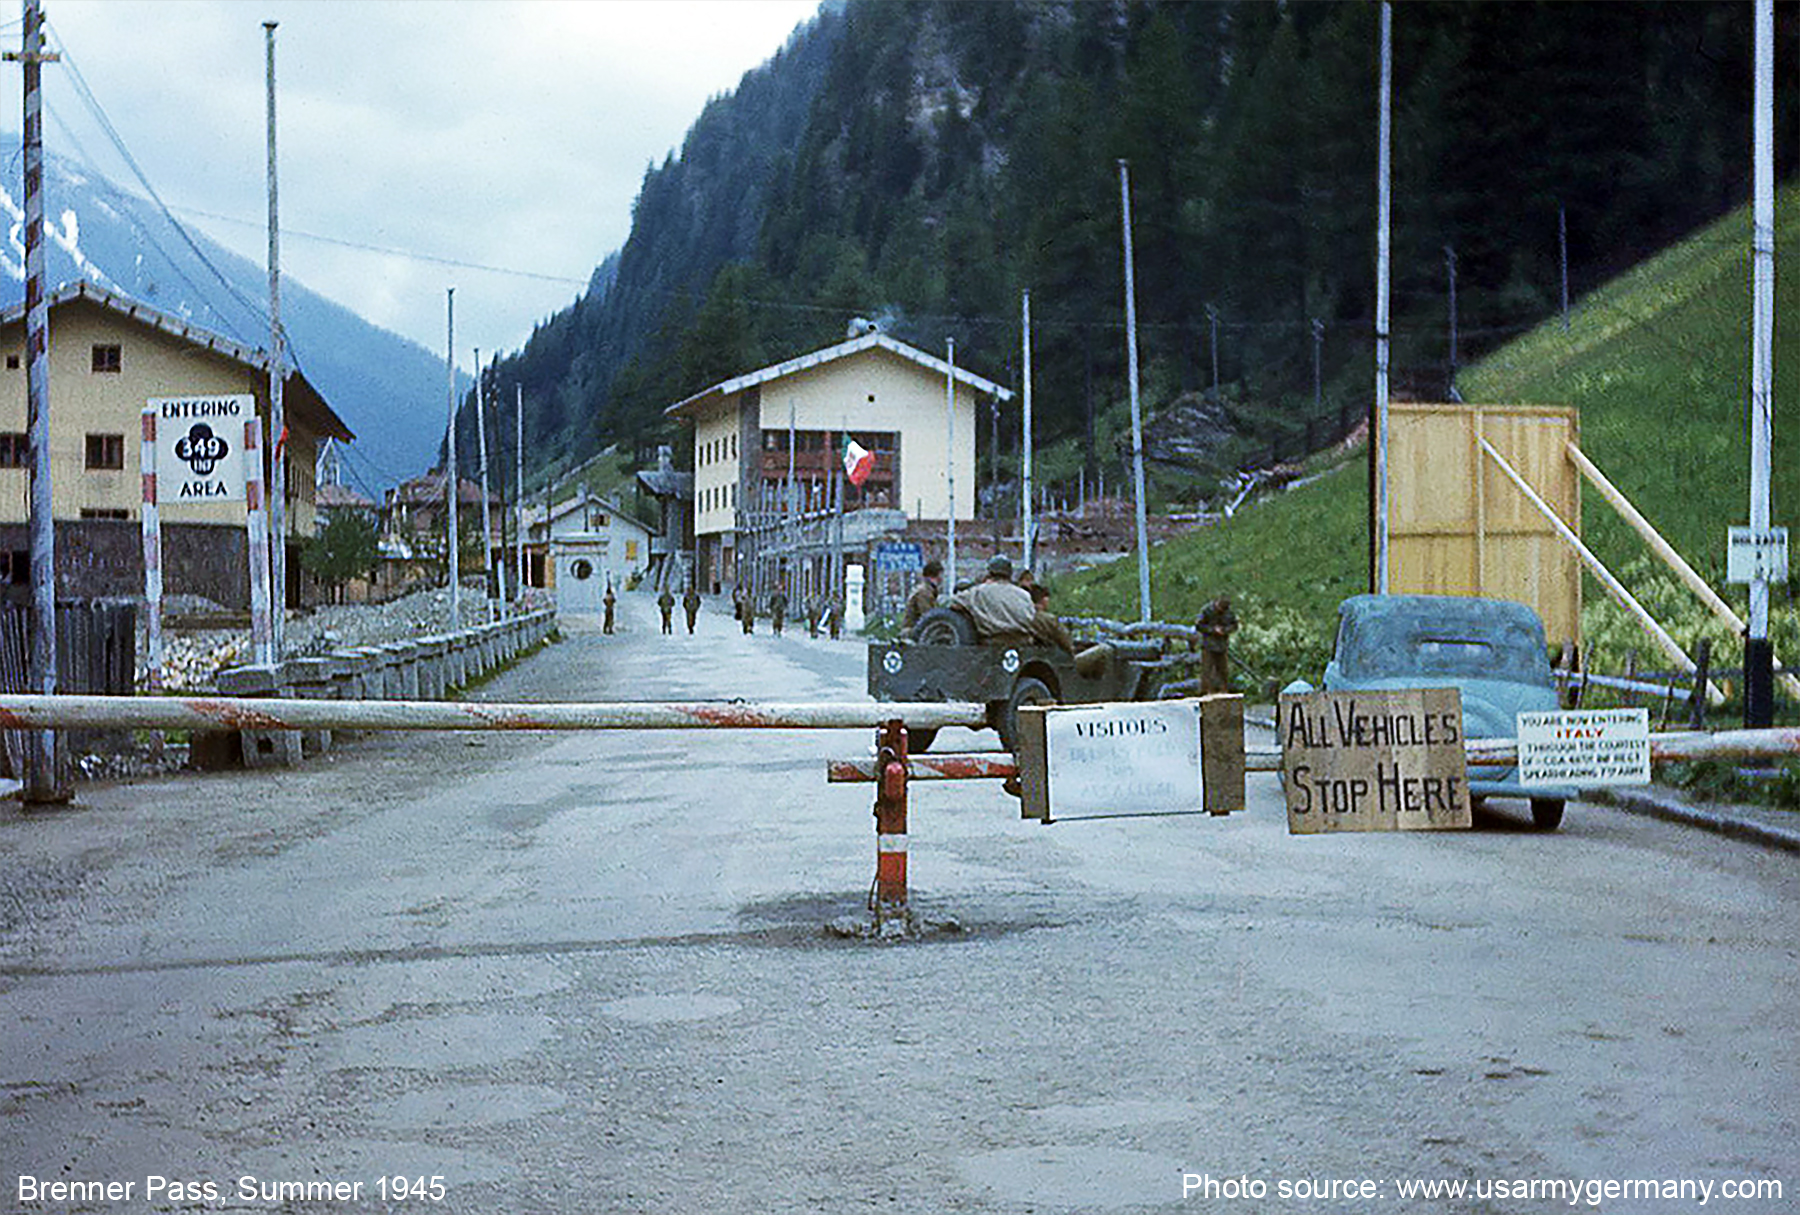 The Brenner Pass c. 1945 (Source:  www.usarmygermany.com )